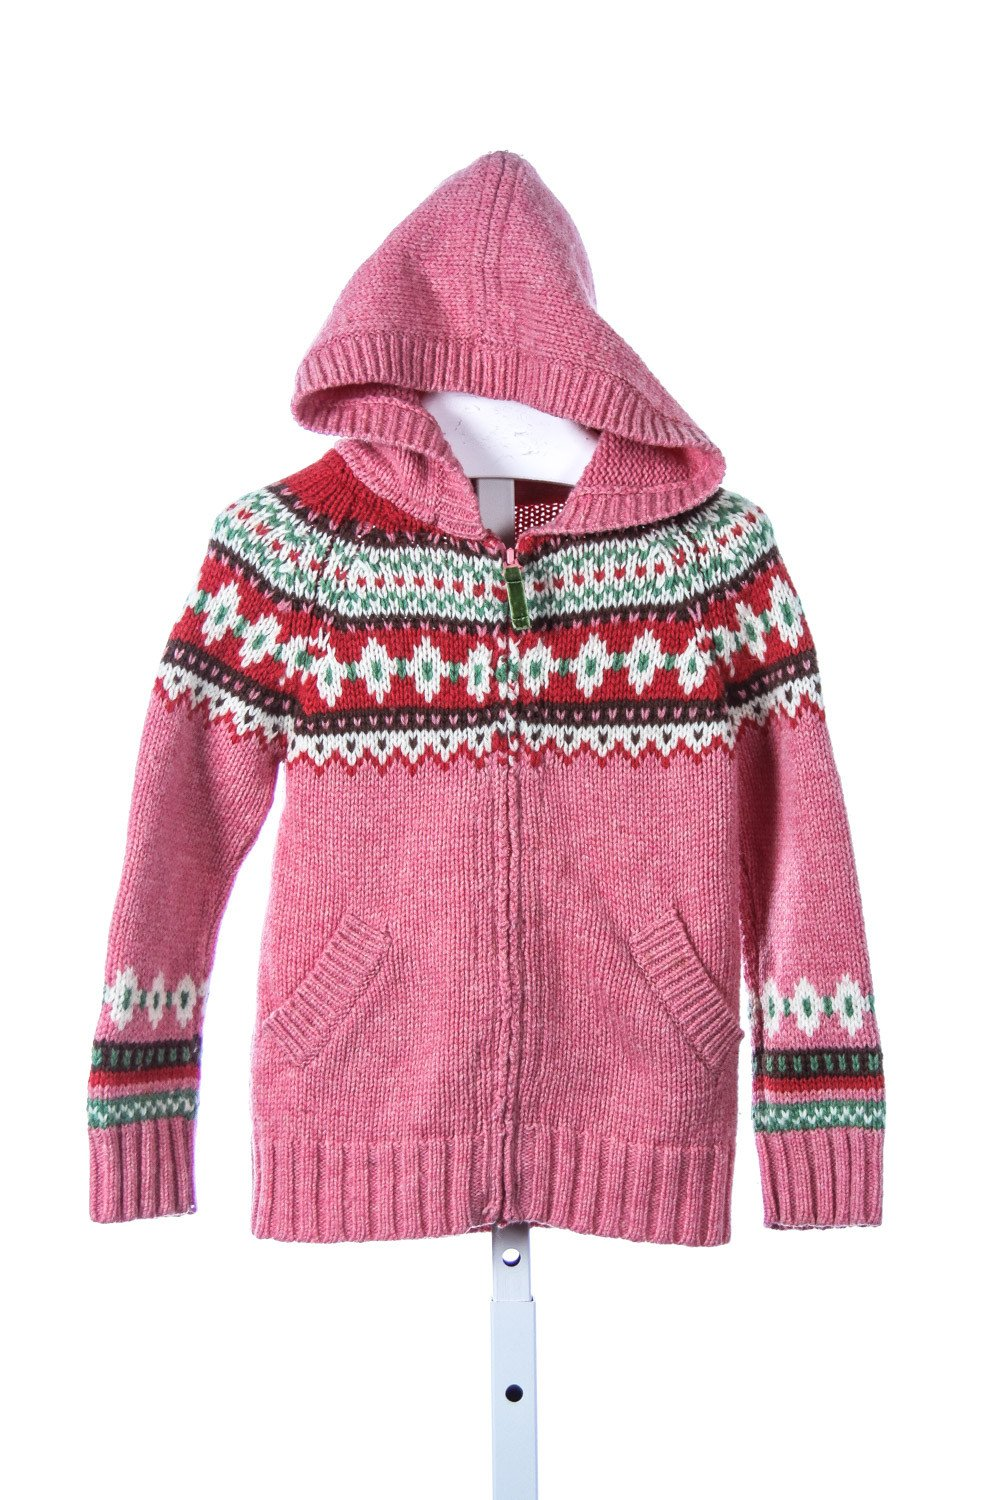 MINI BODEN PINK FAIR ISLE ZIP-UP SWEATER *SIZE 3-4